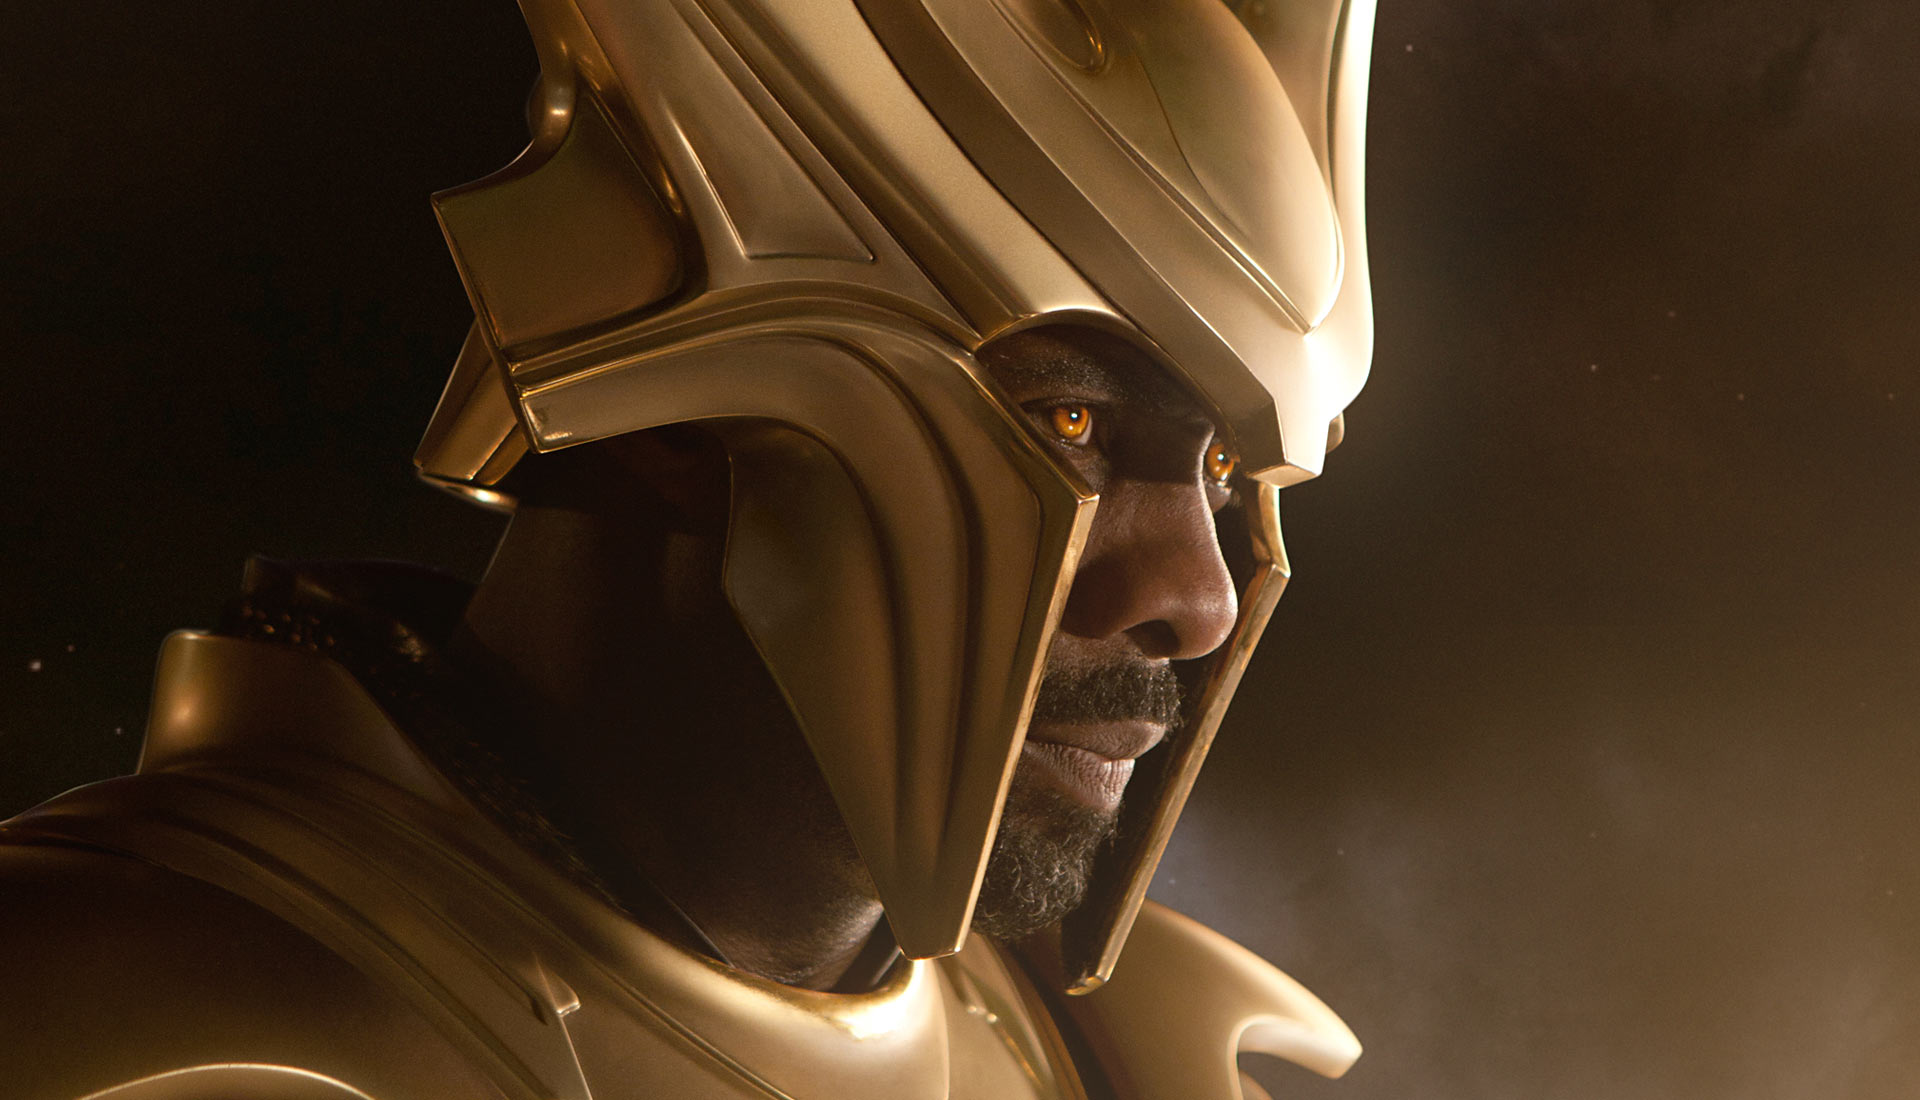 Heimdall-Thor-Movie-Wallpaper-17